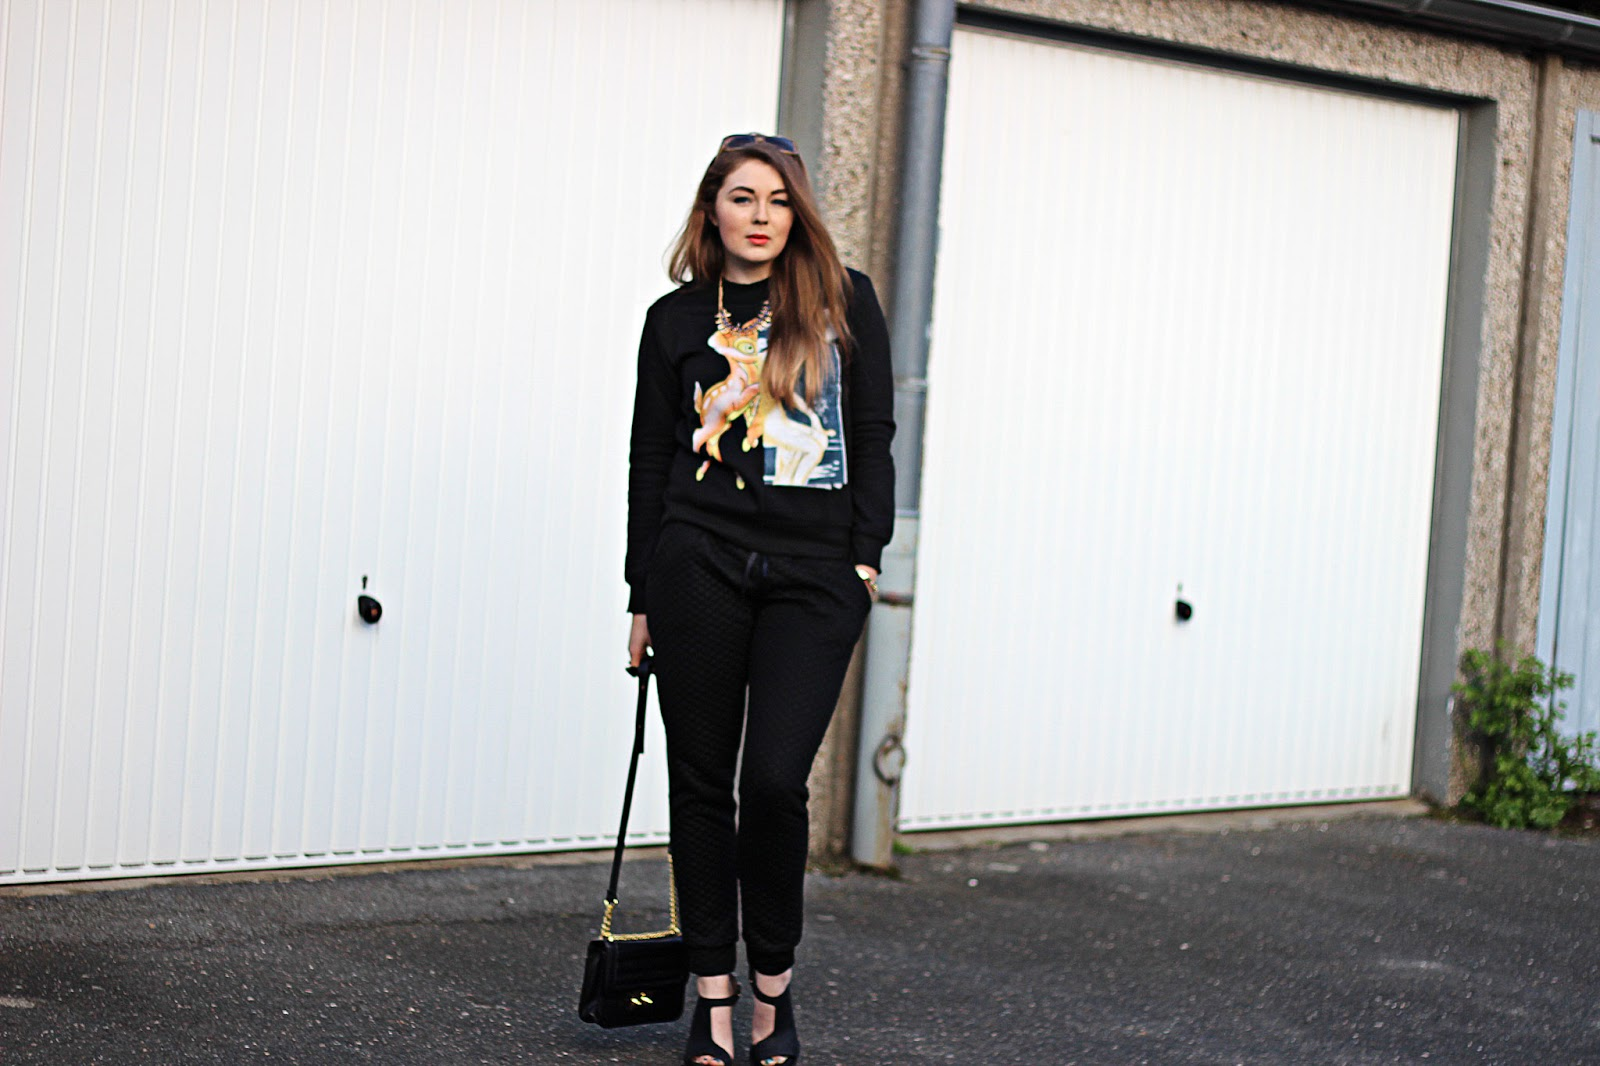 Miu Miu Sonnenbrille, H&M Sweatpants, modeblogger, hamburg, bambi sweater, givenchy, sheinside, outfit, & other stories, schuhe, gina tricot bag, schwarz, black, pullover, print, 2014, sommer,  summer trend, german fashionblogger,